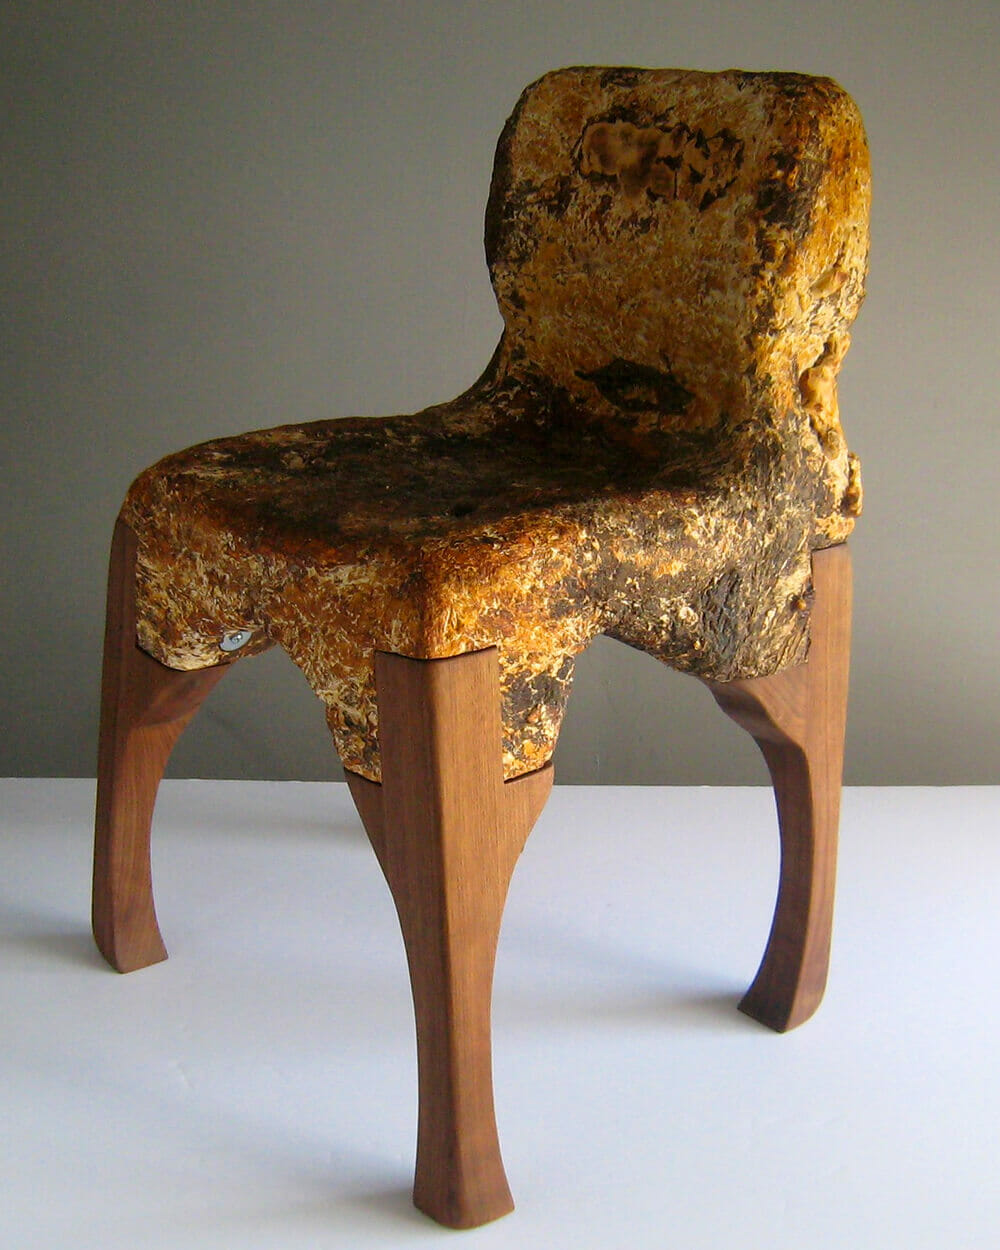 Furniture made from mushrooms